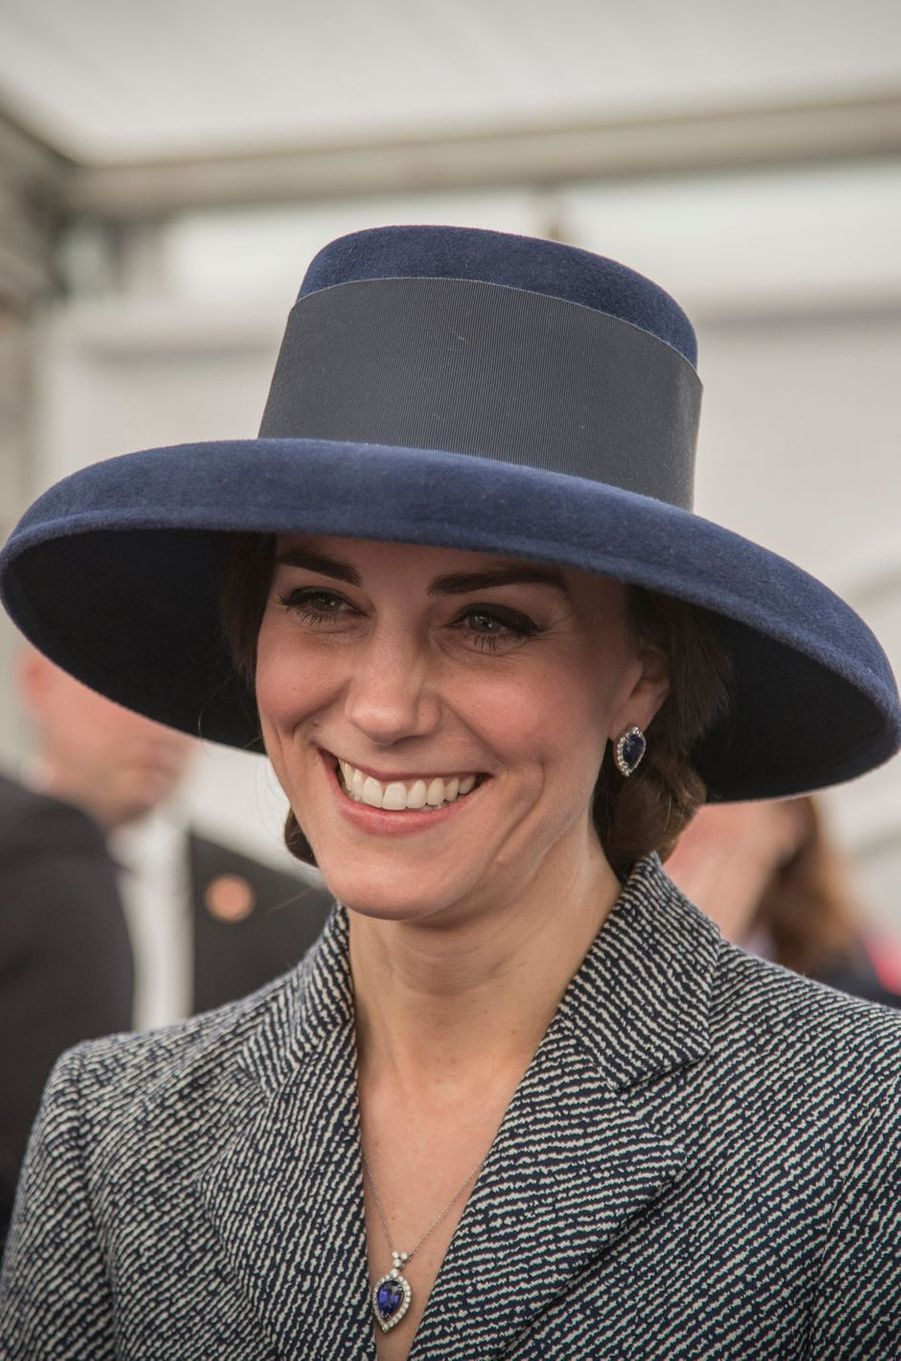 La duchesse de Cambridge, née Kate Middleton, à Londres le 9 mars 2017